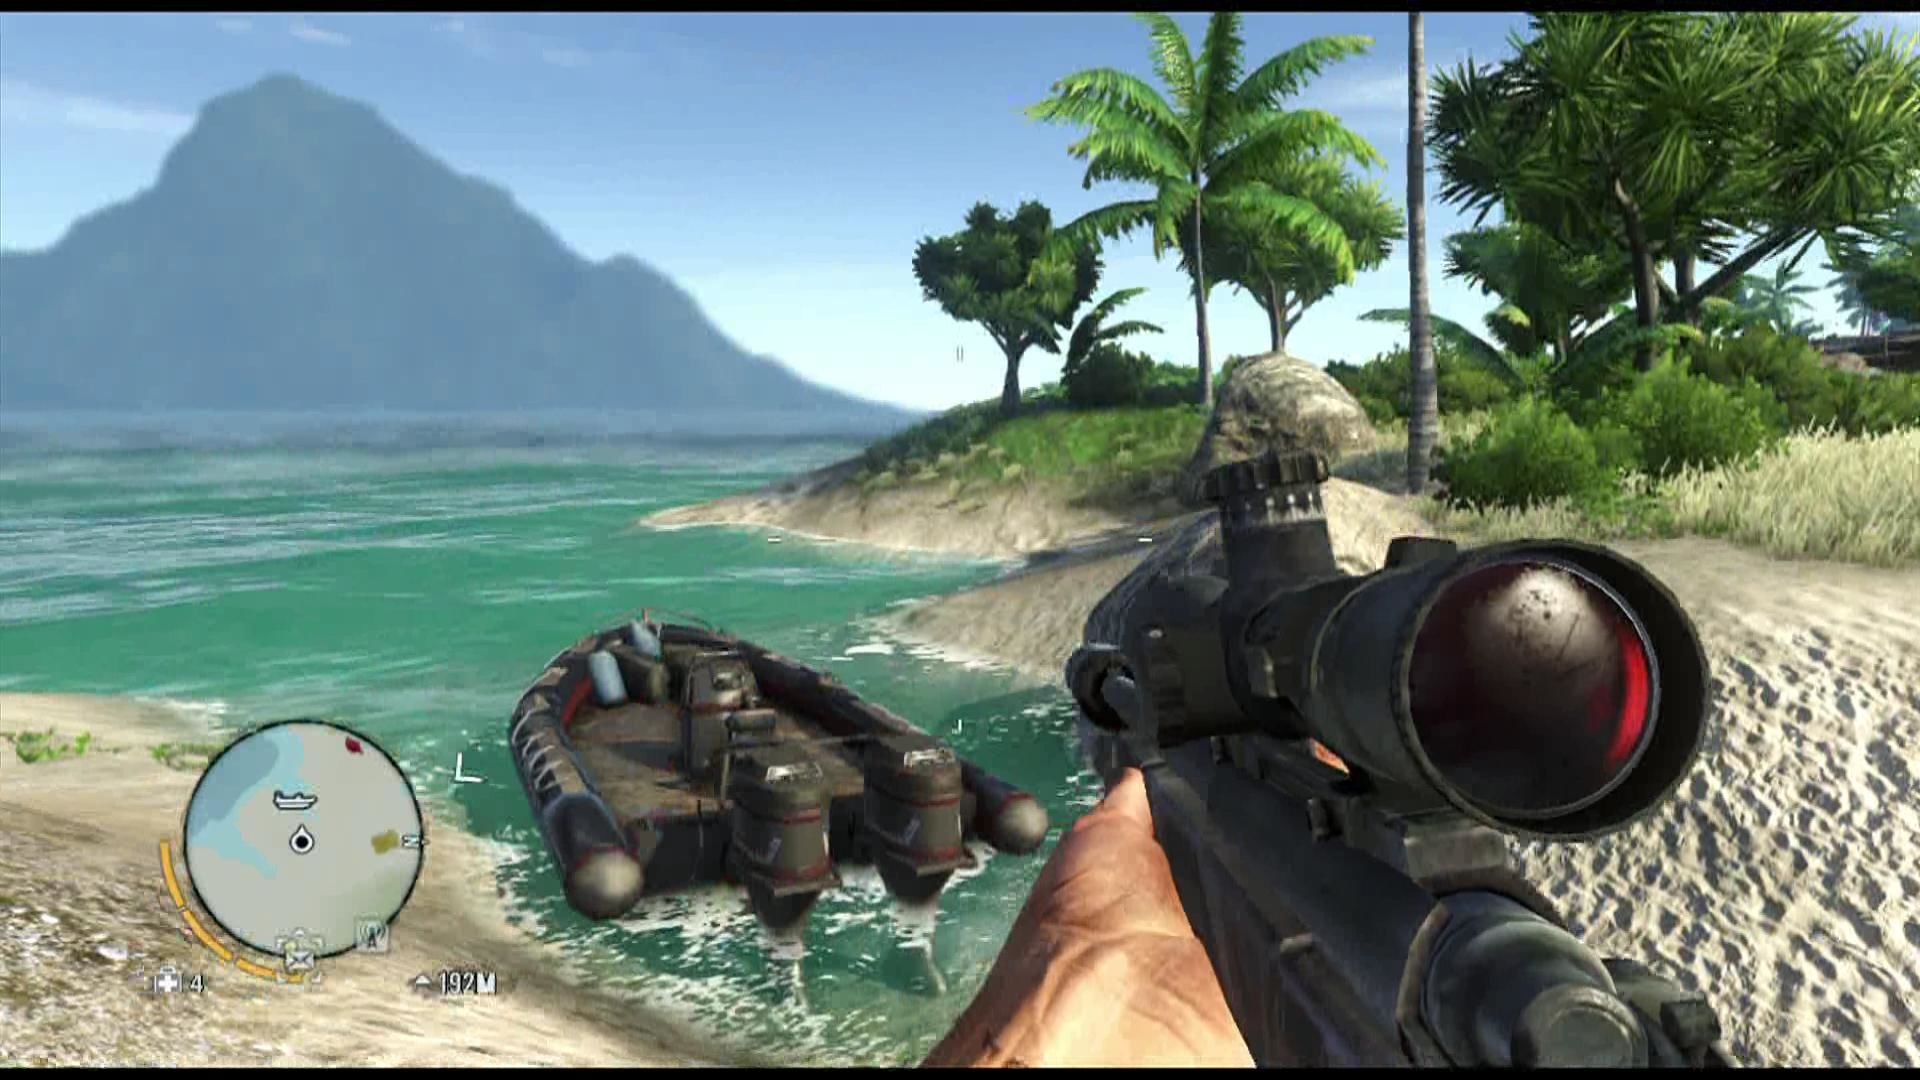 Far Cry 3 Xbox 360 Besides land vehicles, you can also user boats and hang gliders